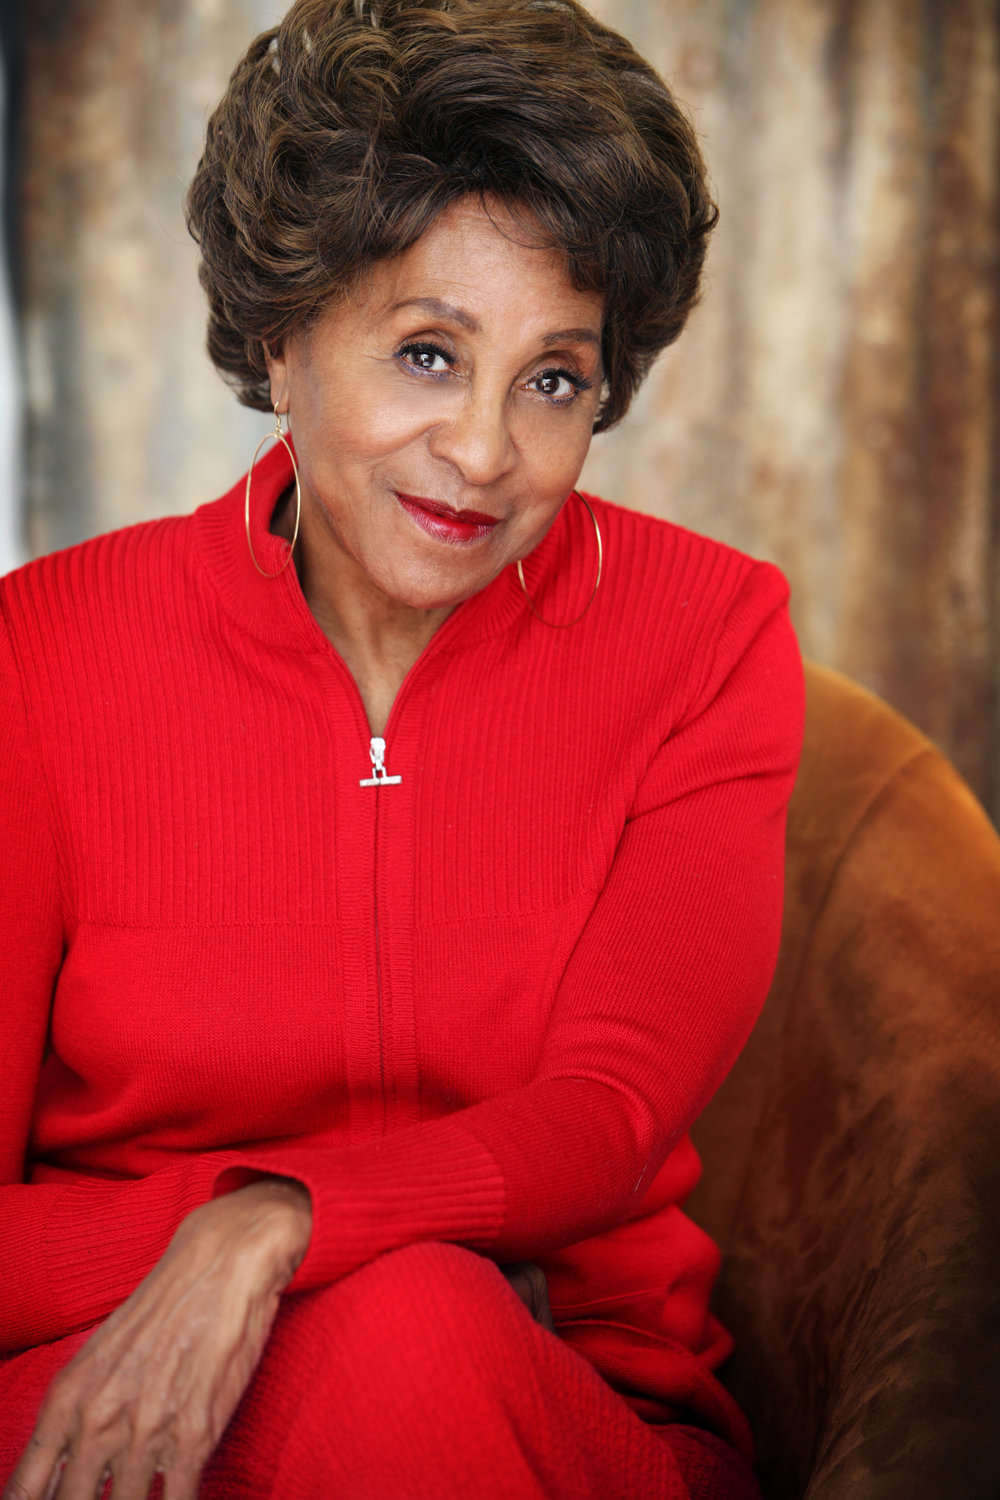 Marla Gibbs headshot by Shandon Photography